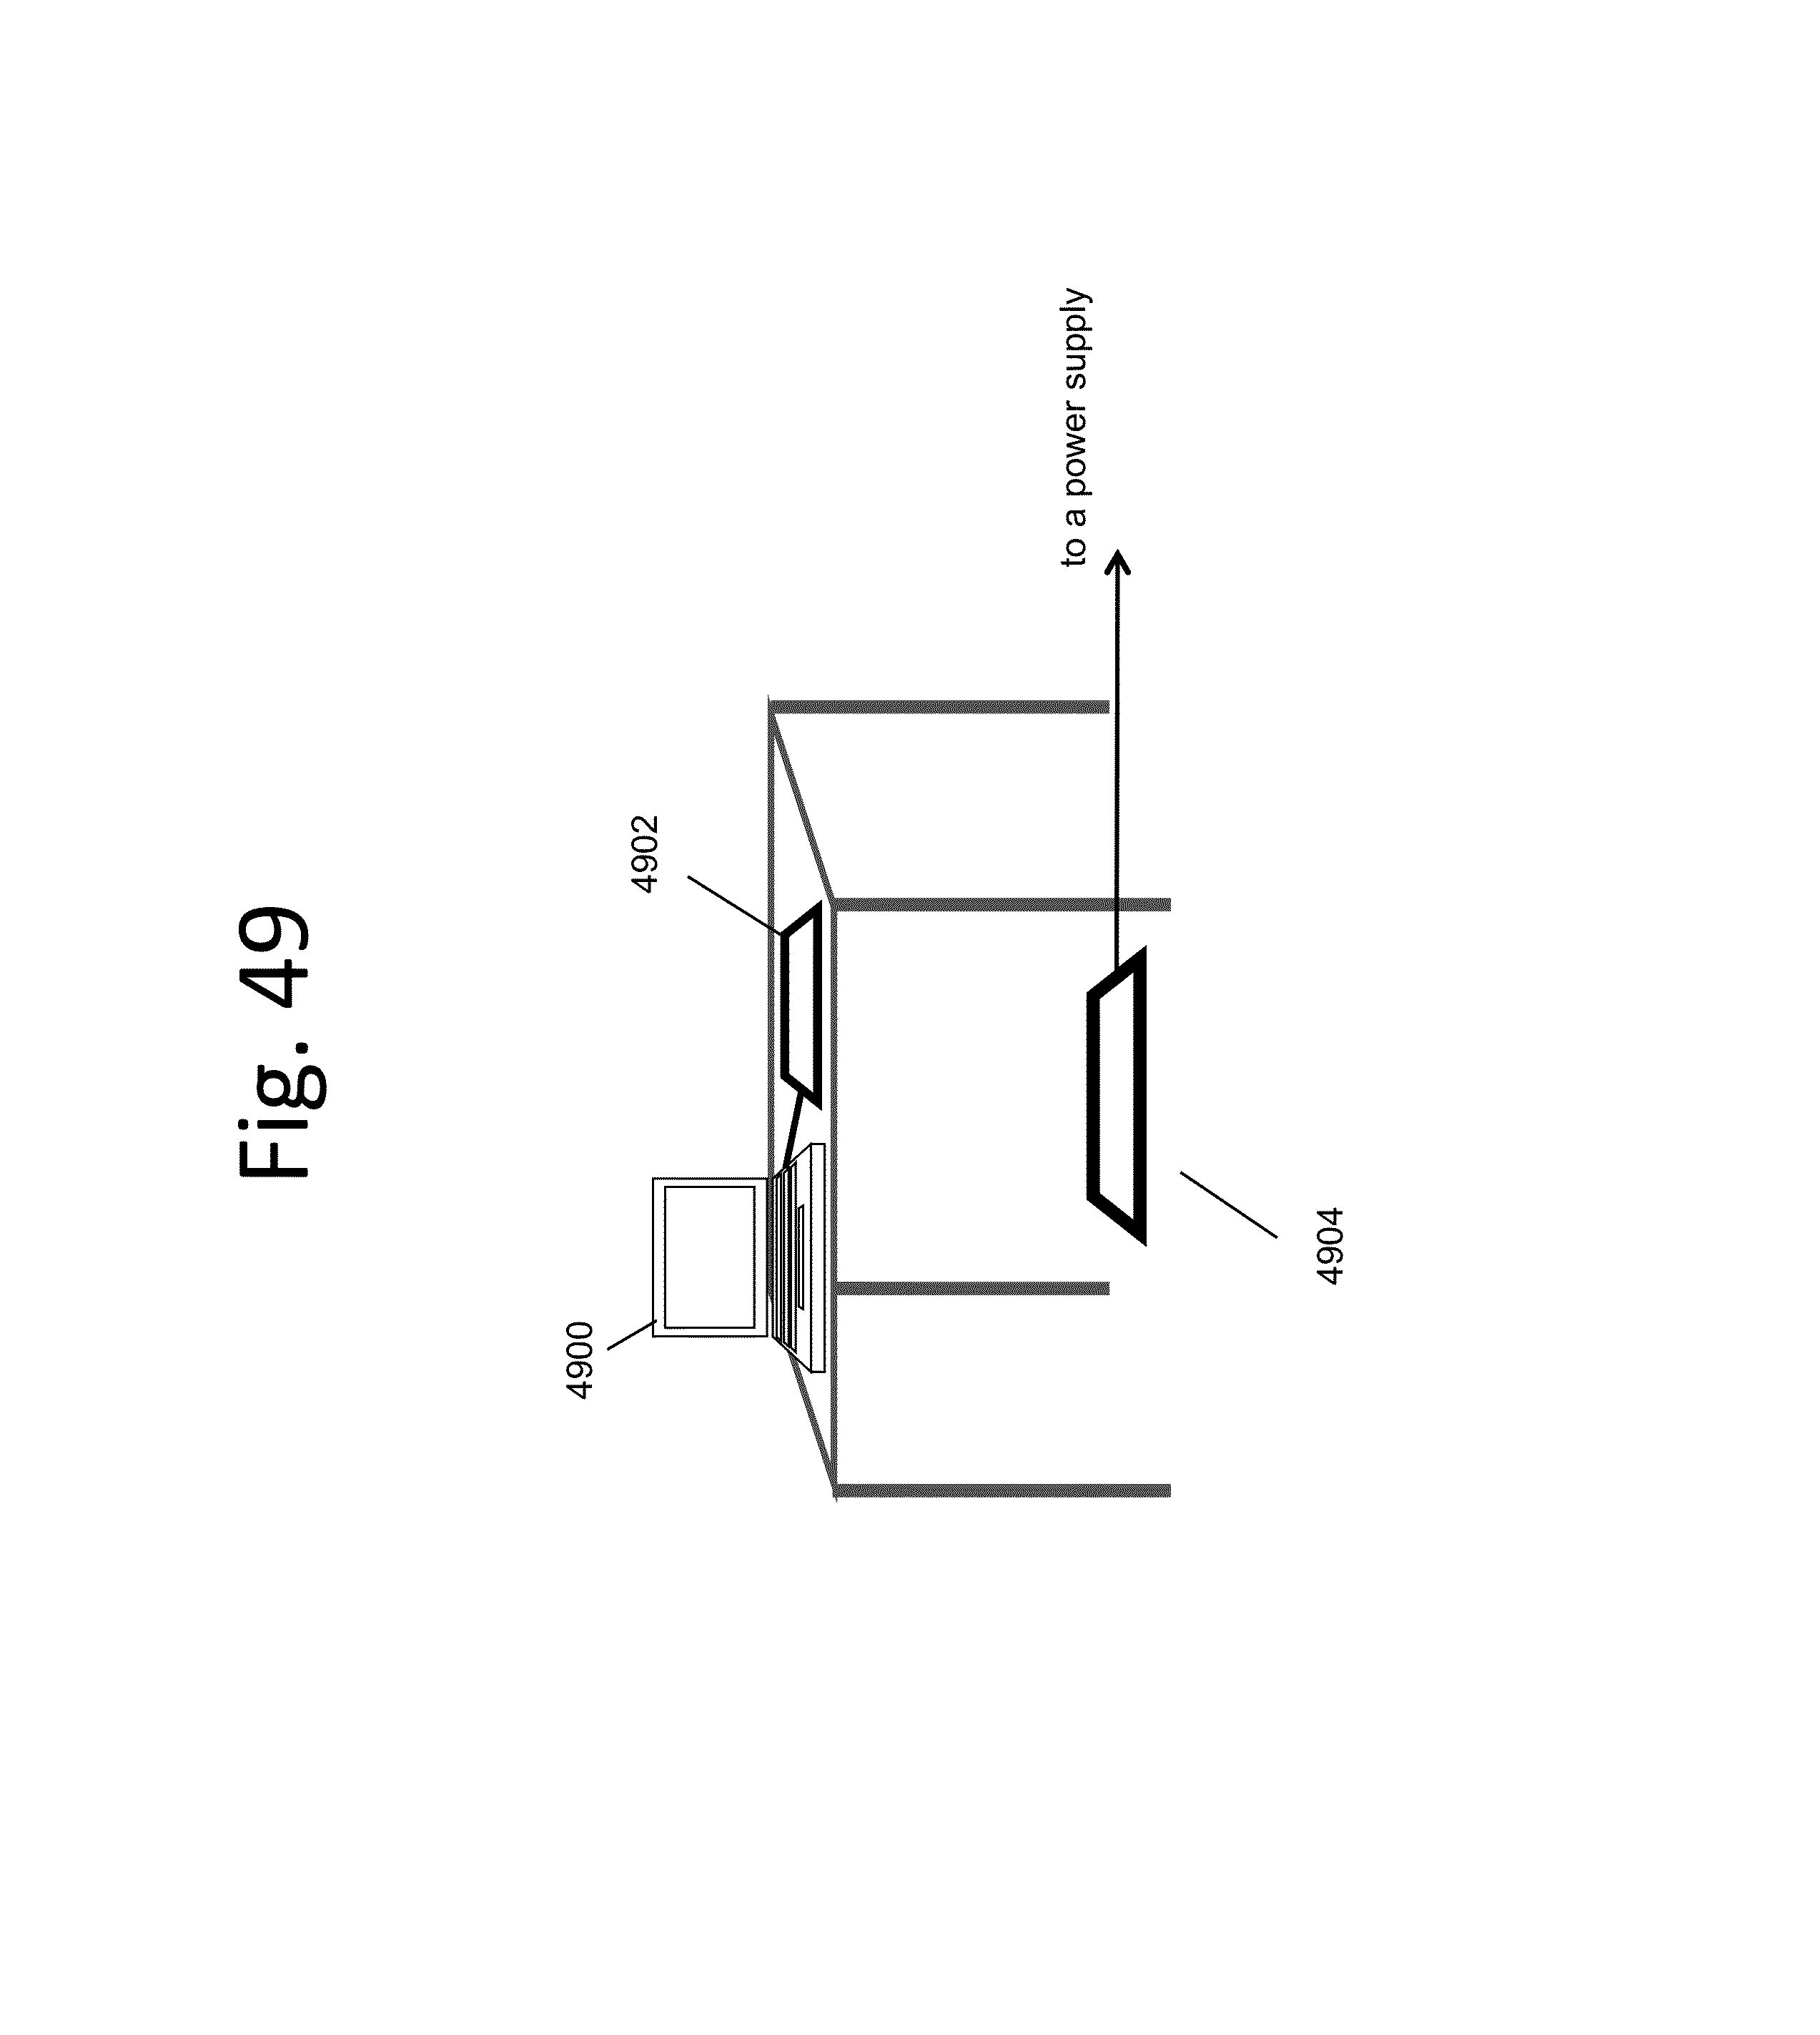 Patent Us 8487480 B1 Classd Audio Amplifier Reference Design Nxp Images